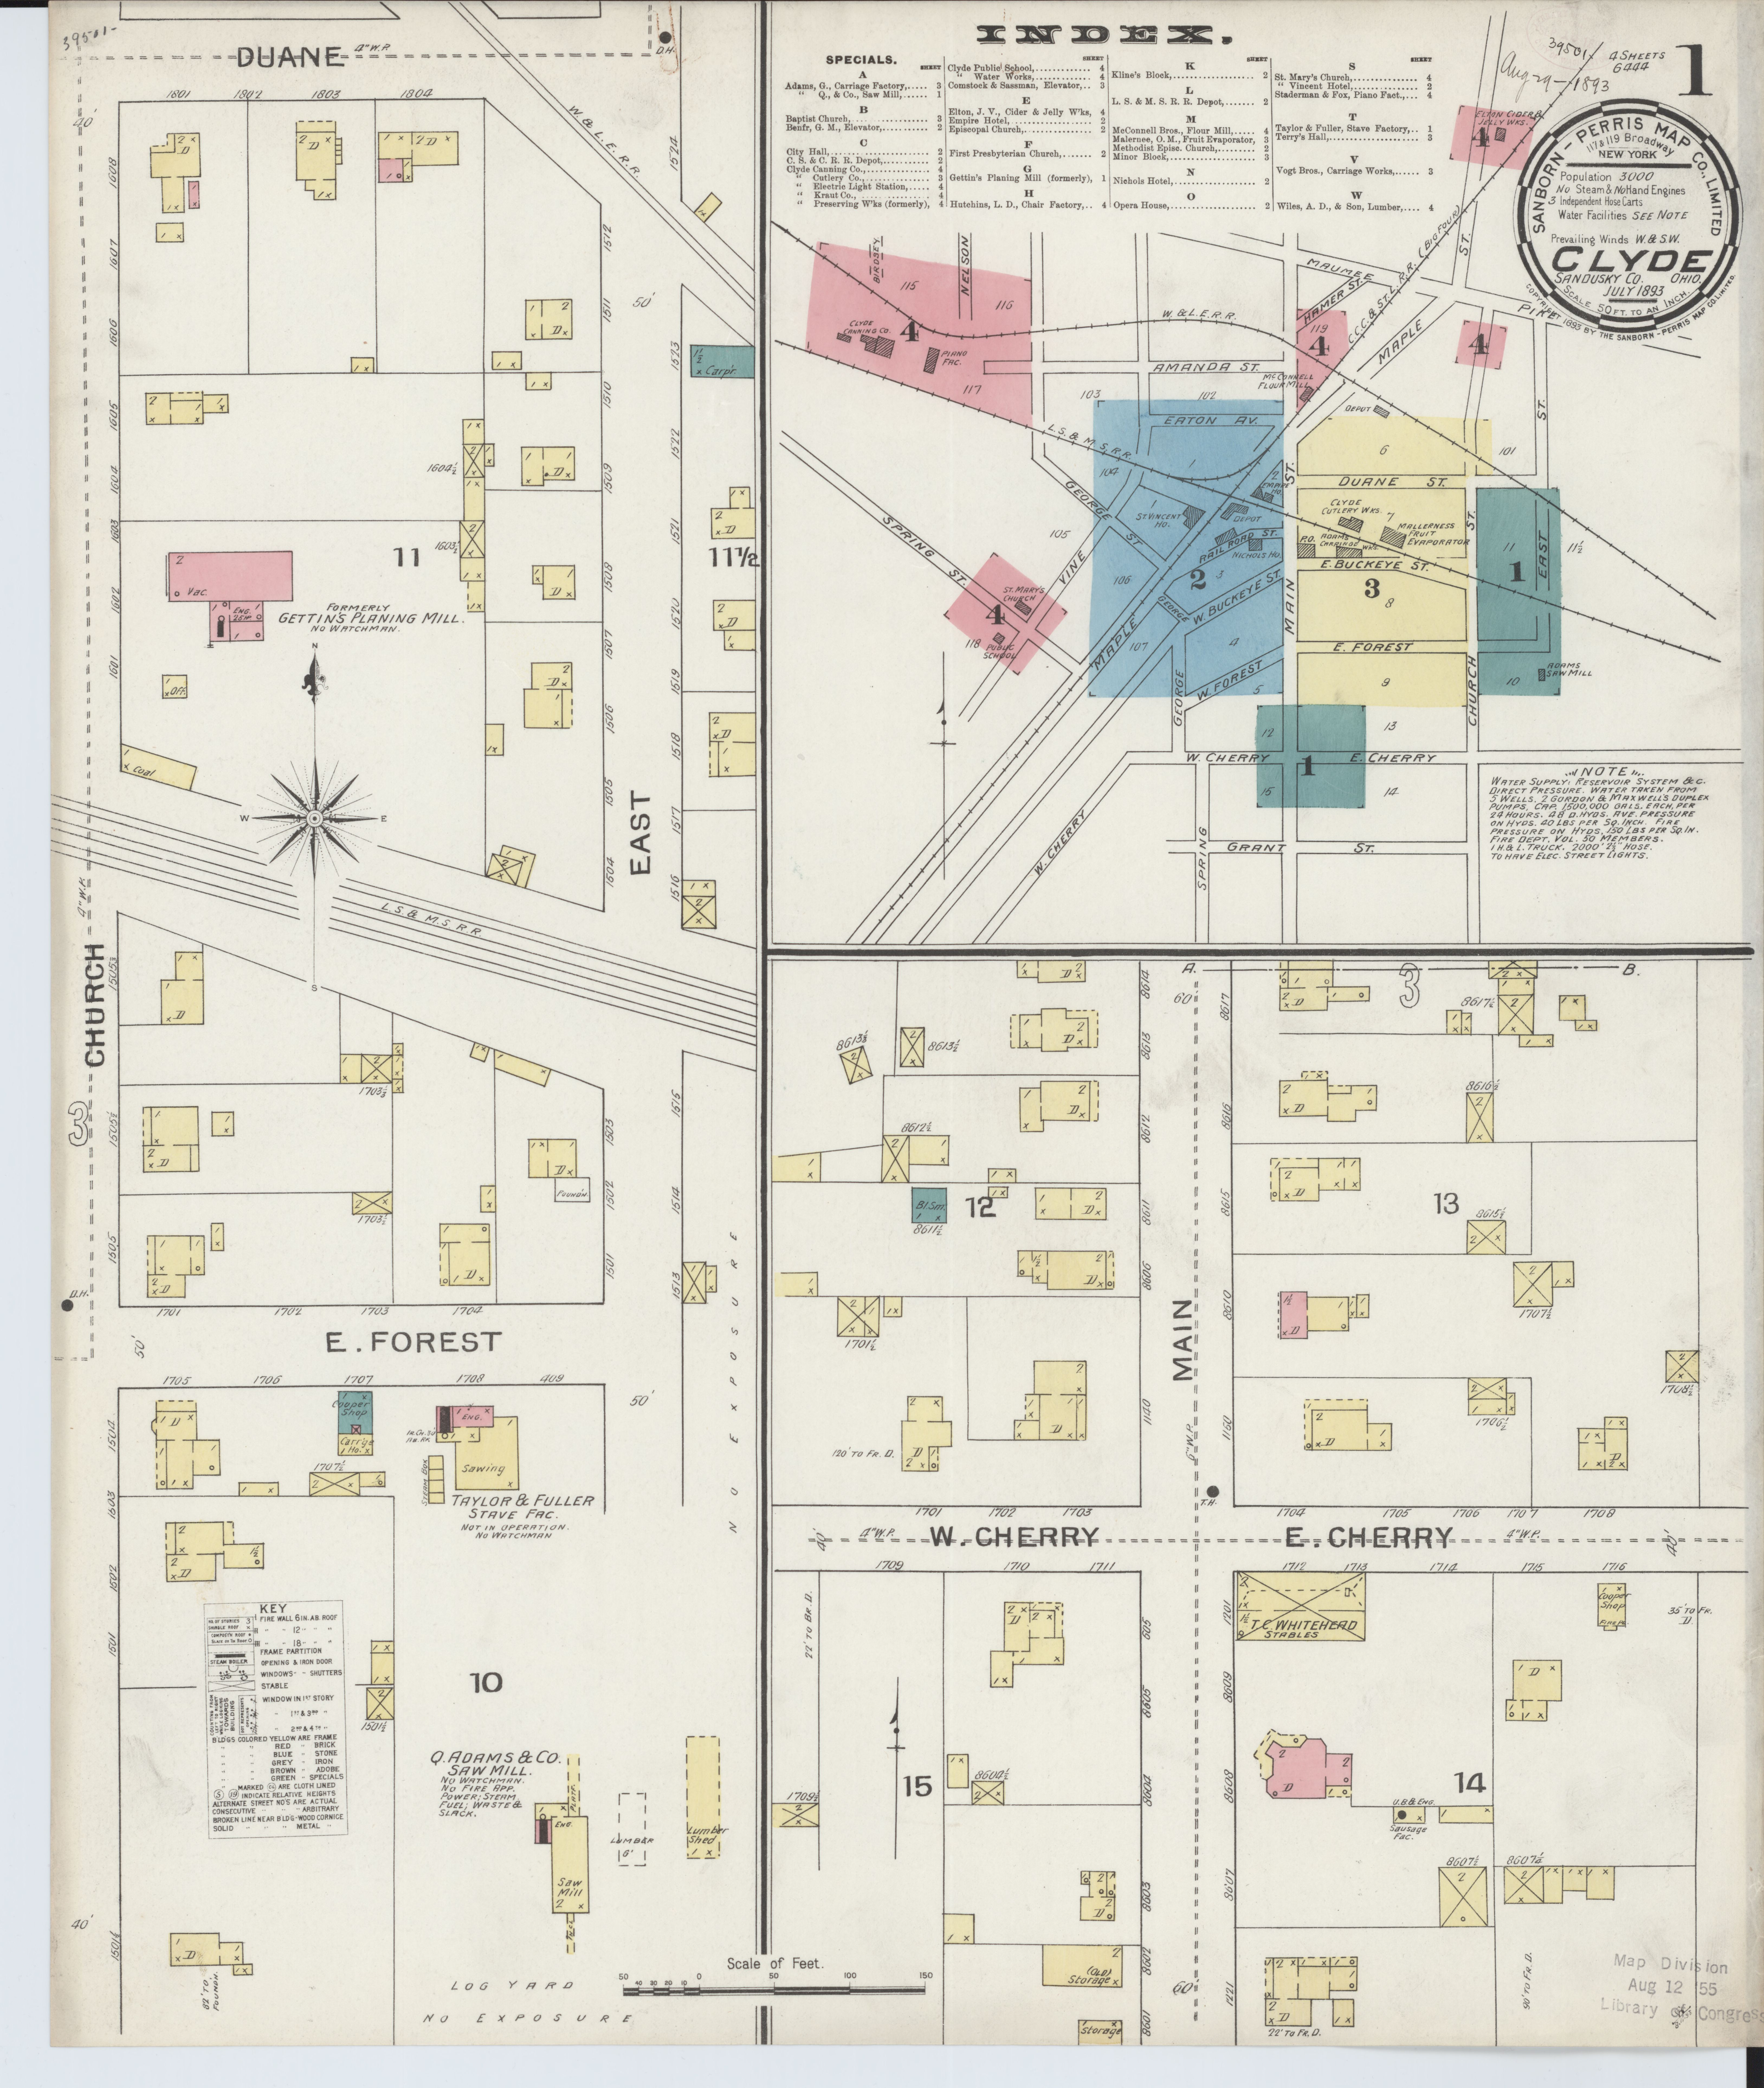 File:Sanborn Fire Insurance Map from Clyde, Sandusky County ... on chillicothe county map, joliet county map, akron county map, calgary county map, loveland county map, dayton county map, connersville county map, reynoldsburg county map, ohio county map, oh county map, wilmington county map, erie county map, rockford county map, wyandot county map, chariton county map, danbury county map, grand rapids county map, manassas county map, sioux city county map, wheeling county map,